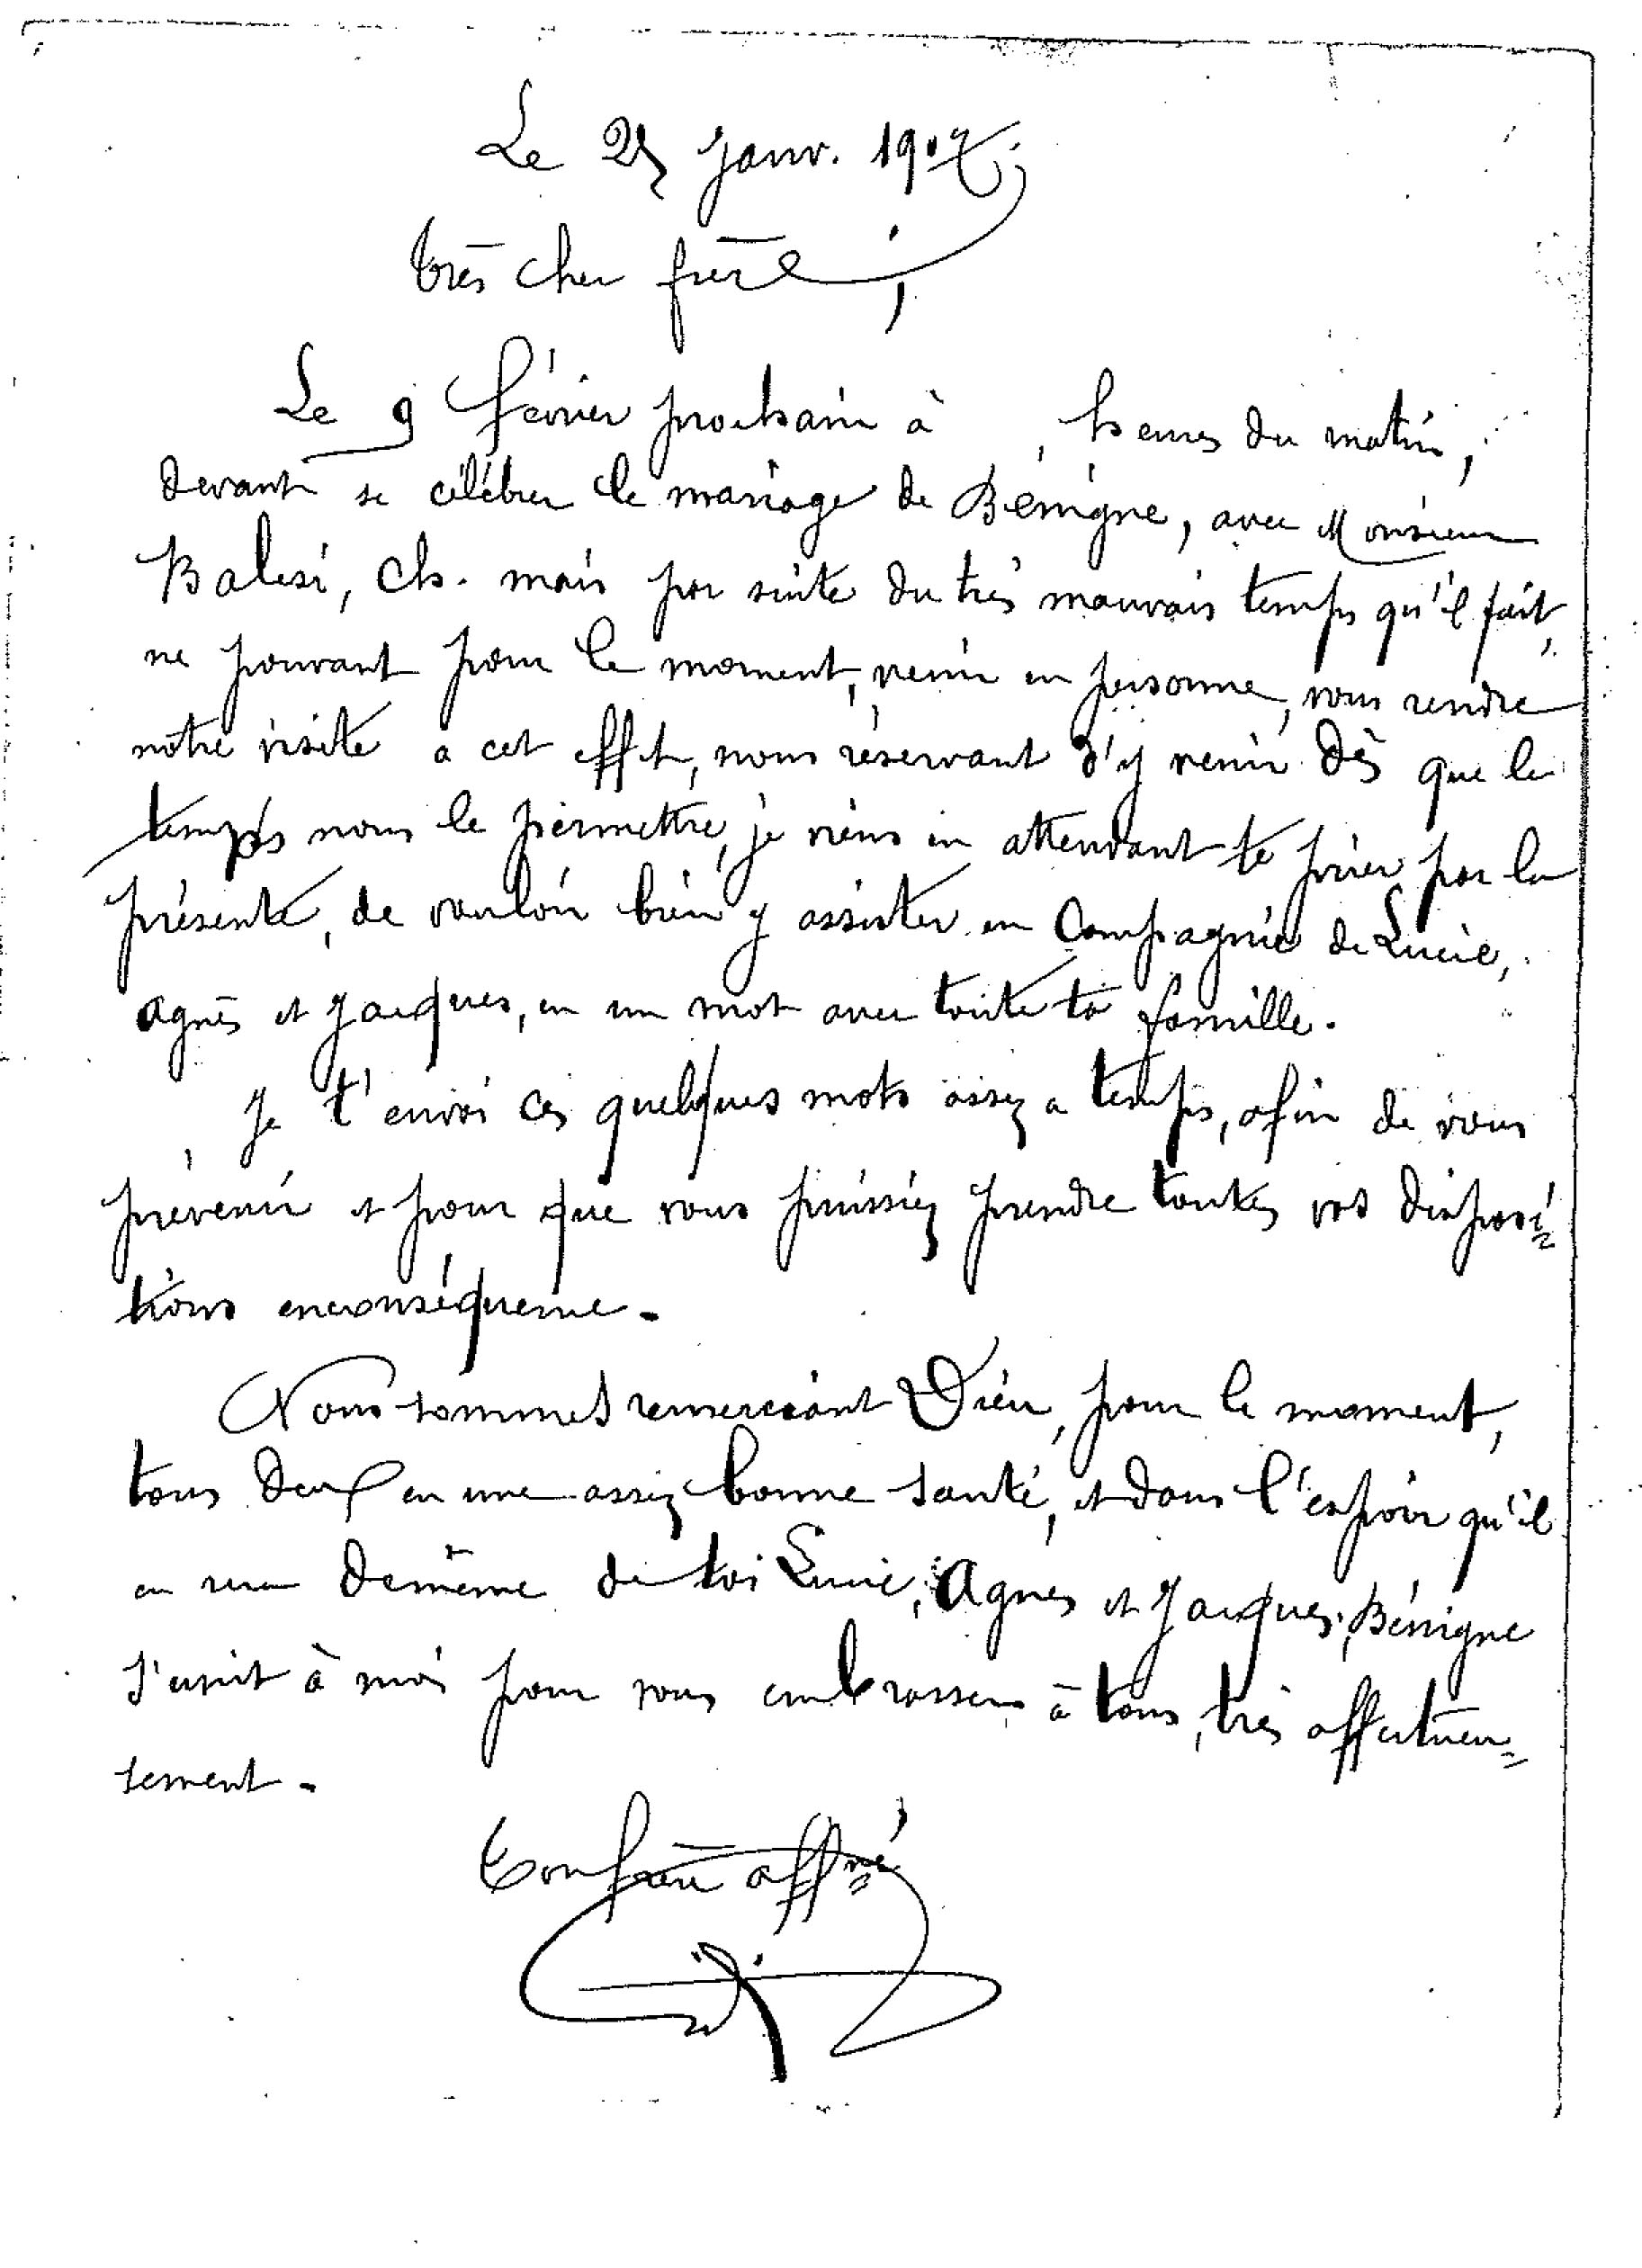 letter sent by his brother to vincent giorgi congratulating him about benignes marriage